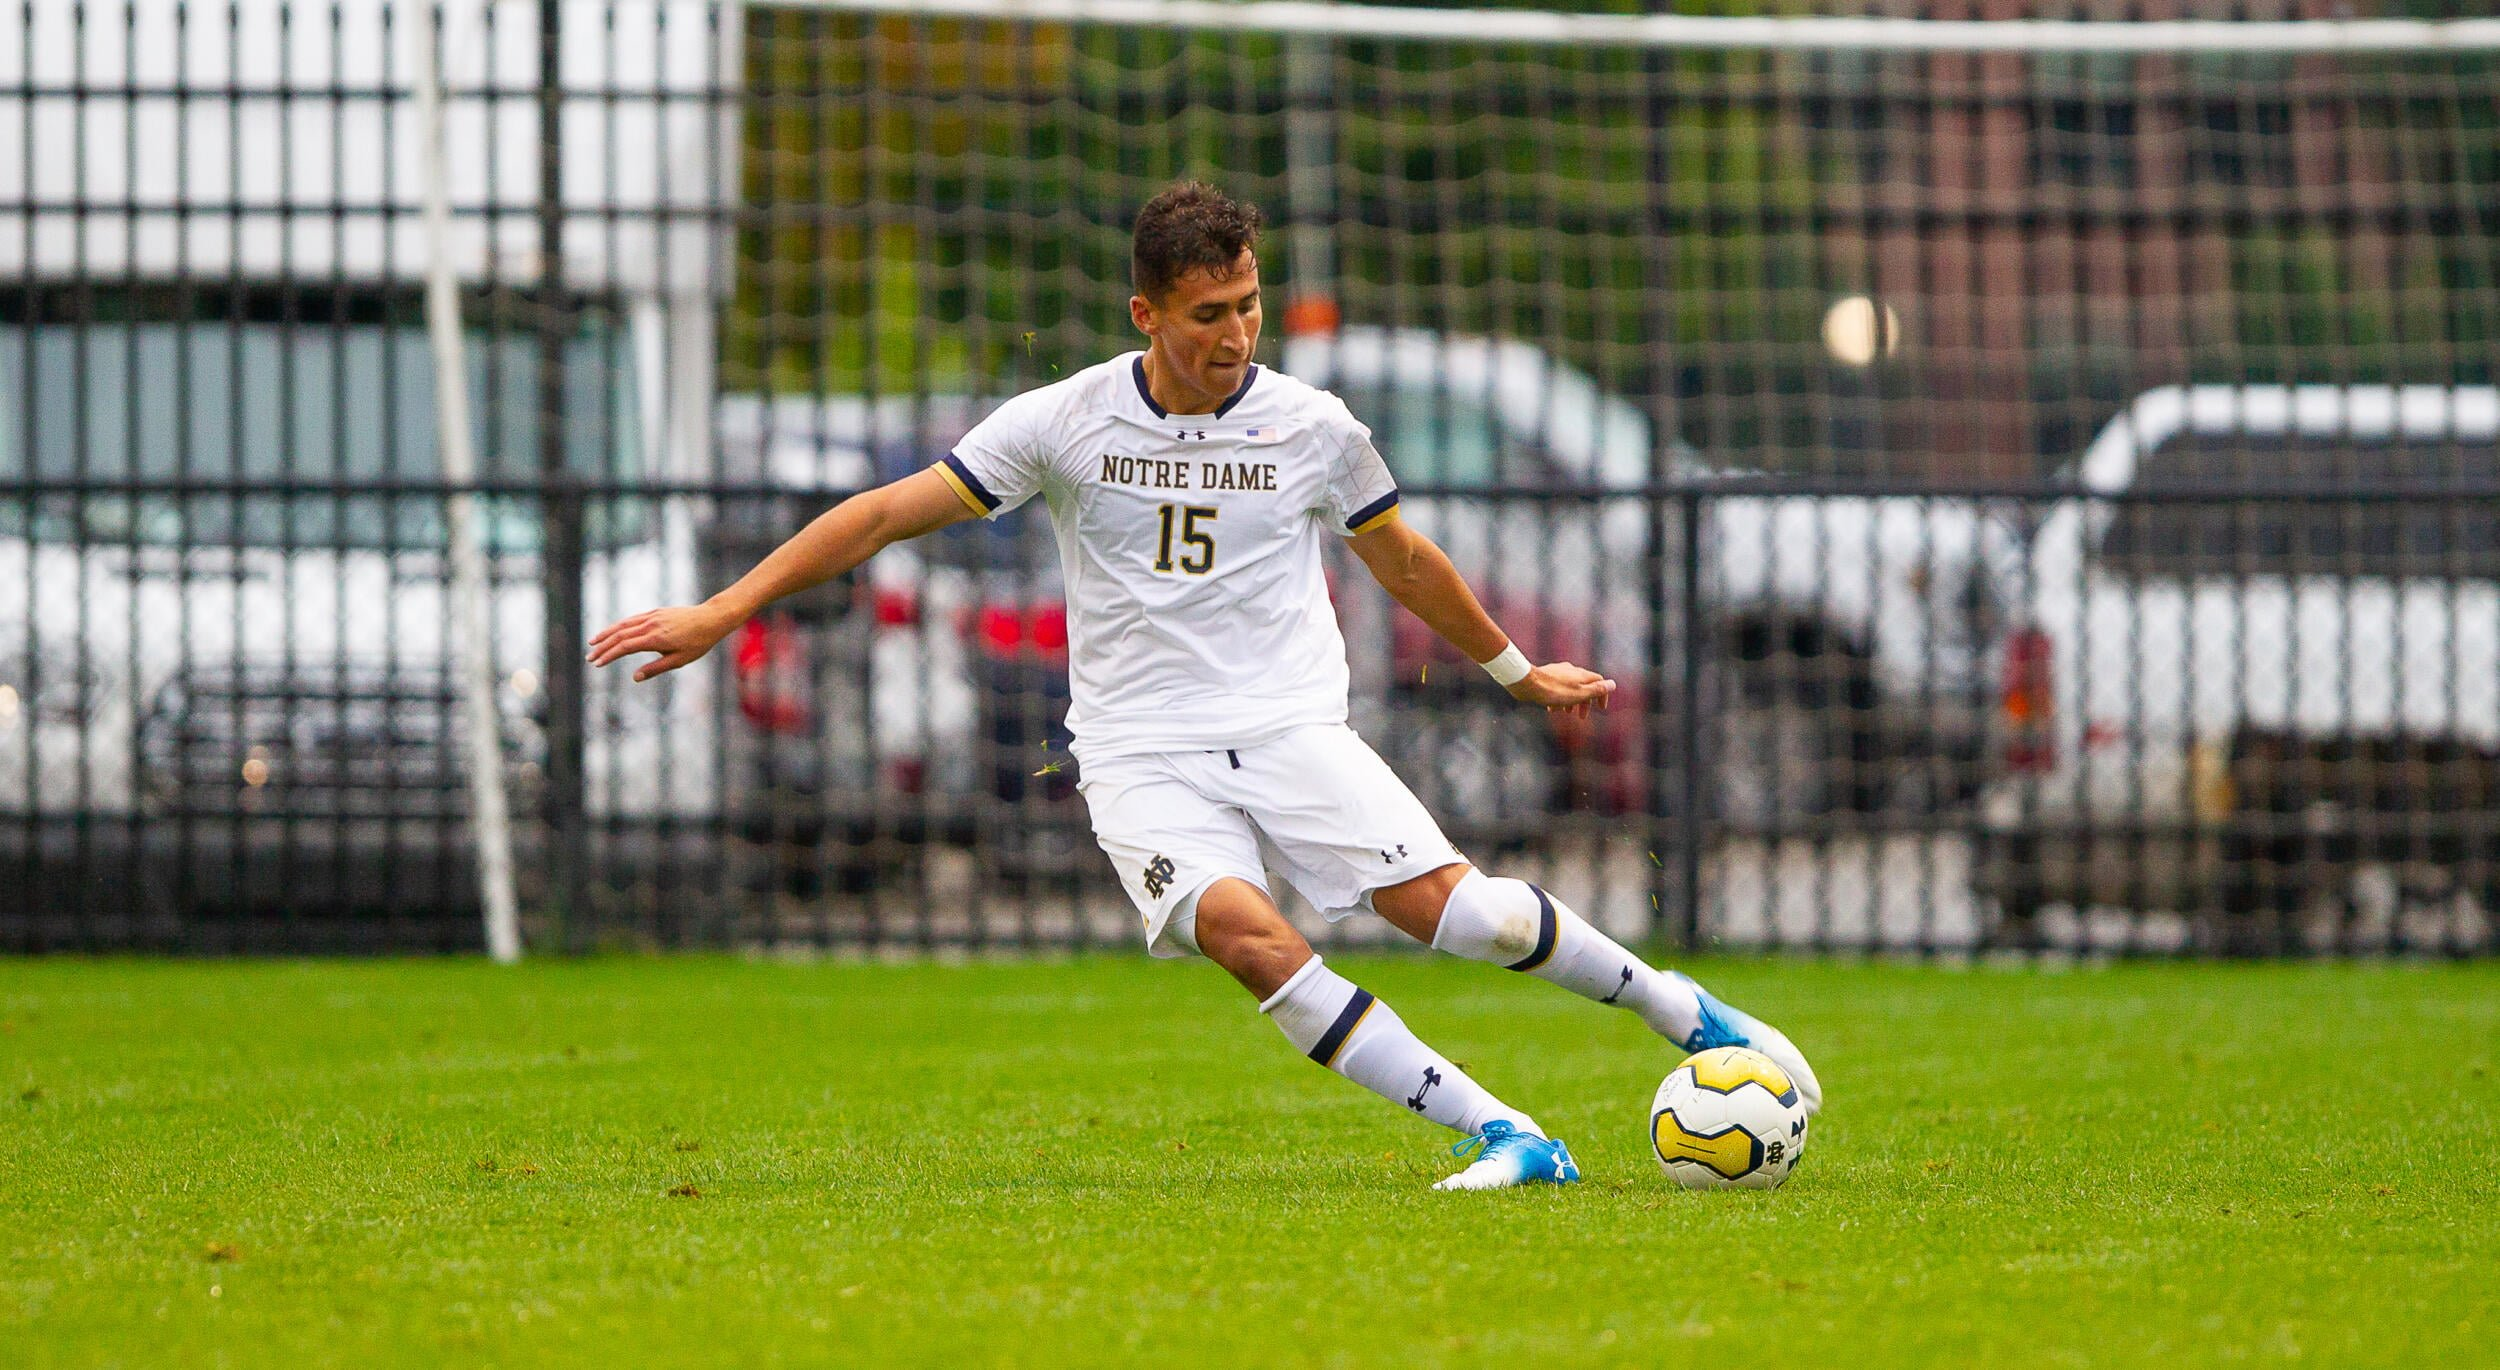 Soccer Tournament action between University of Notre Dame vs. Seattle University at Alumni Stadium on September 6, 2019 in South Bend, Indiana.